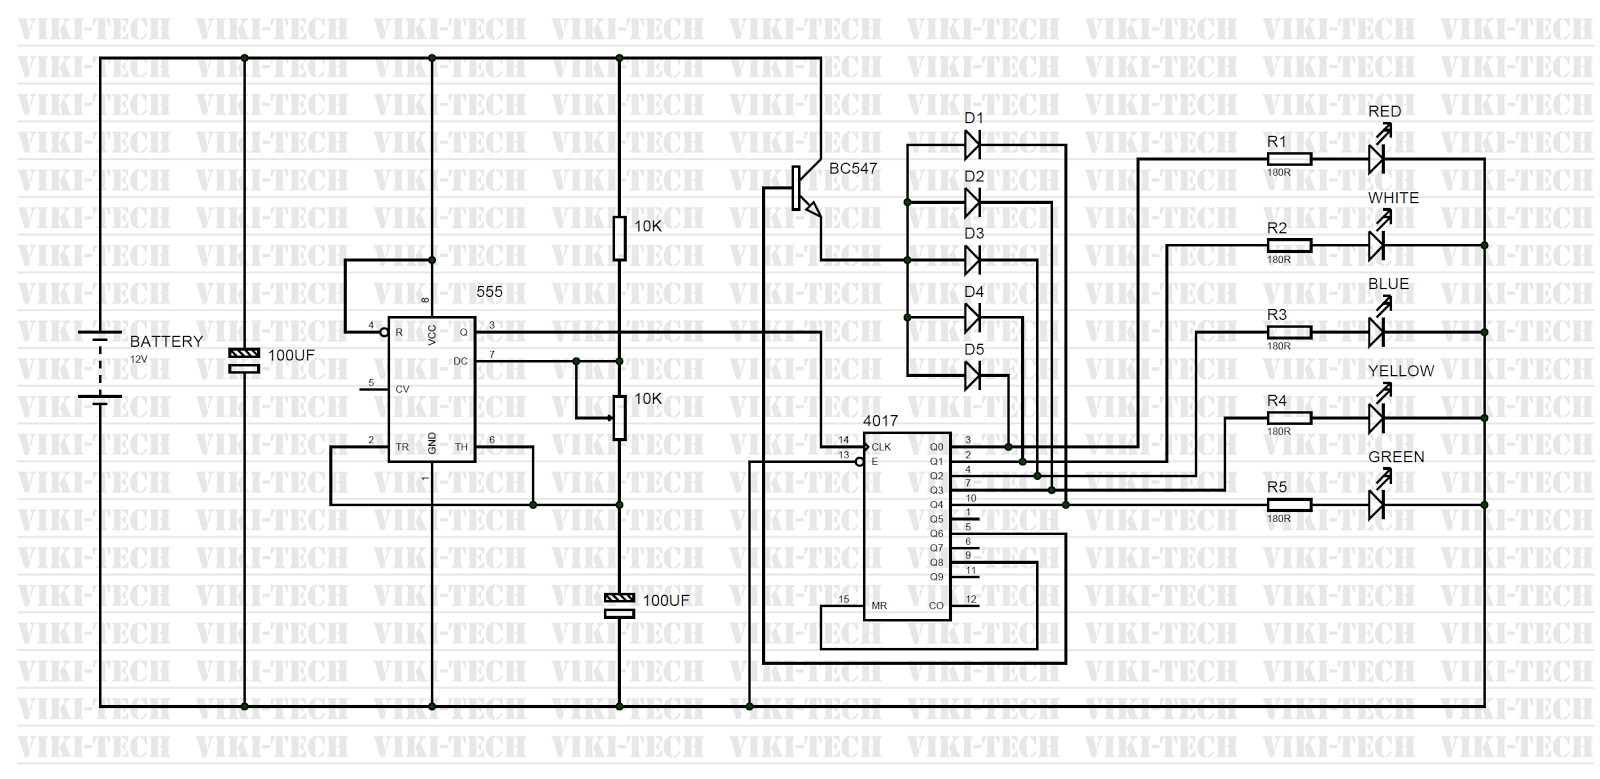 candle lights using ic 4017 ~ electronic circuitscandle lights circuit diagram